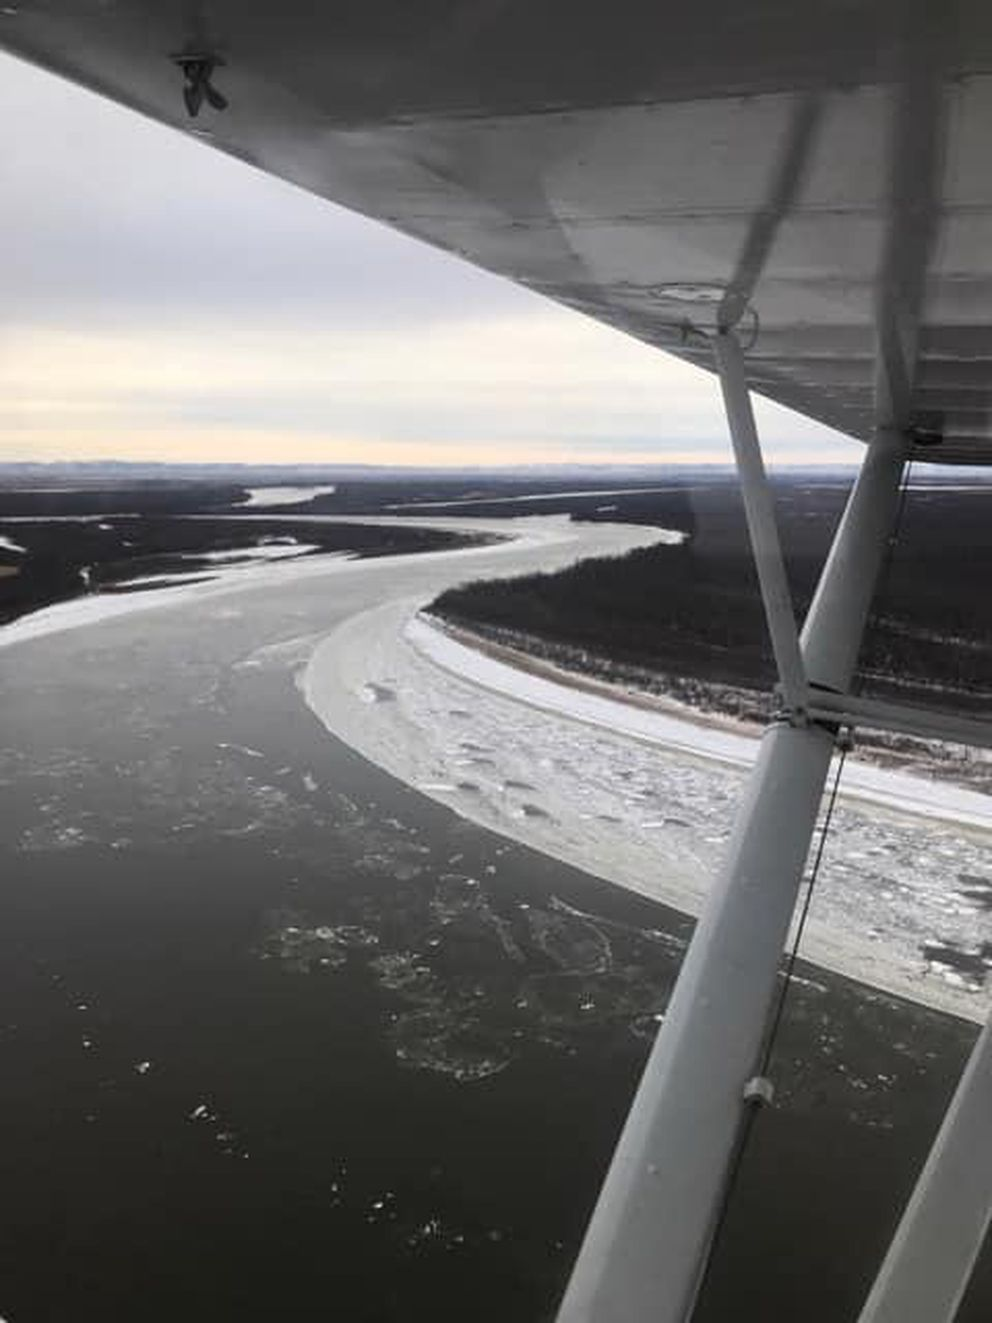 FILE - An aerial survey by U.S. Fish and Wildlife Service shows open water on the Kuskokwim River on November 15, 2018. (U.S. Fish and Wildlife Service photo)